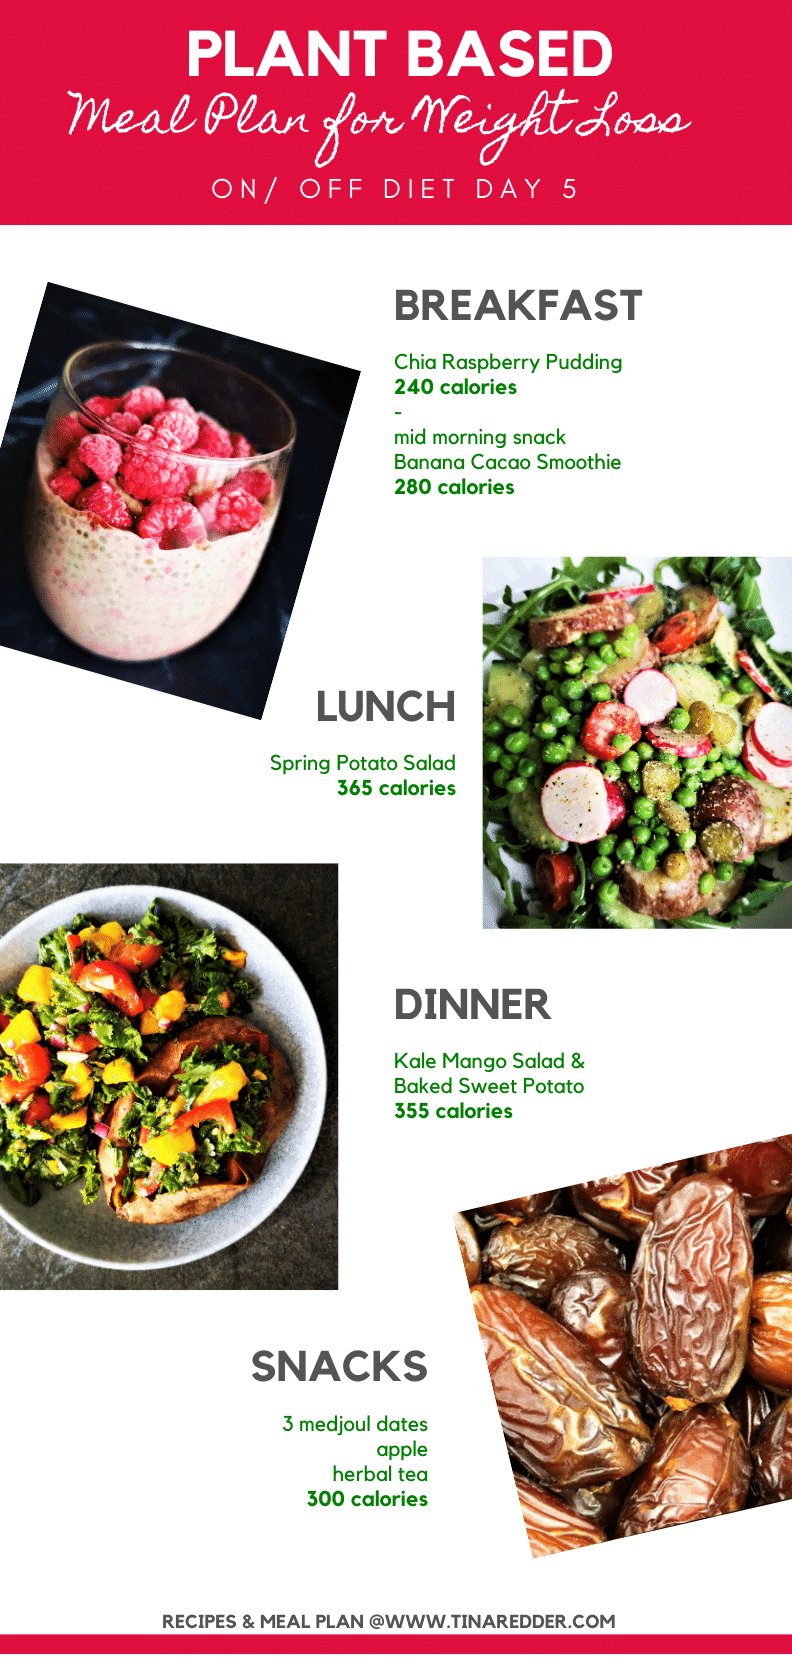 plant based meal plan for weight loss #5